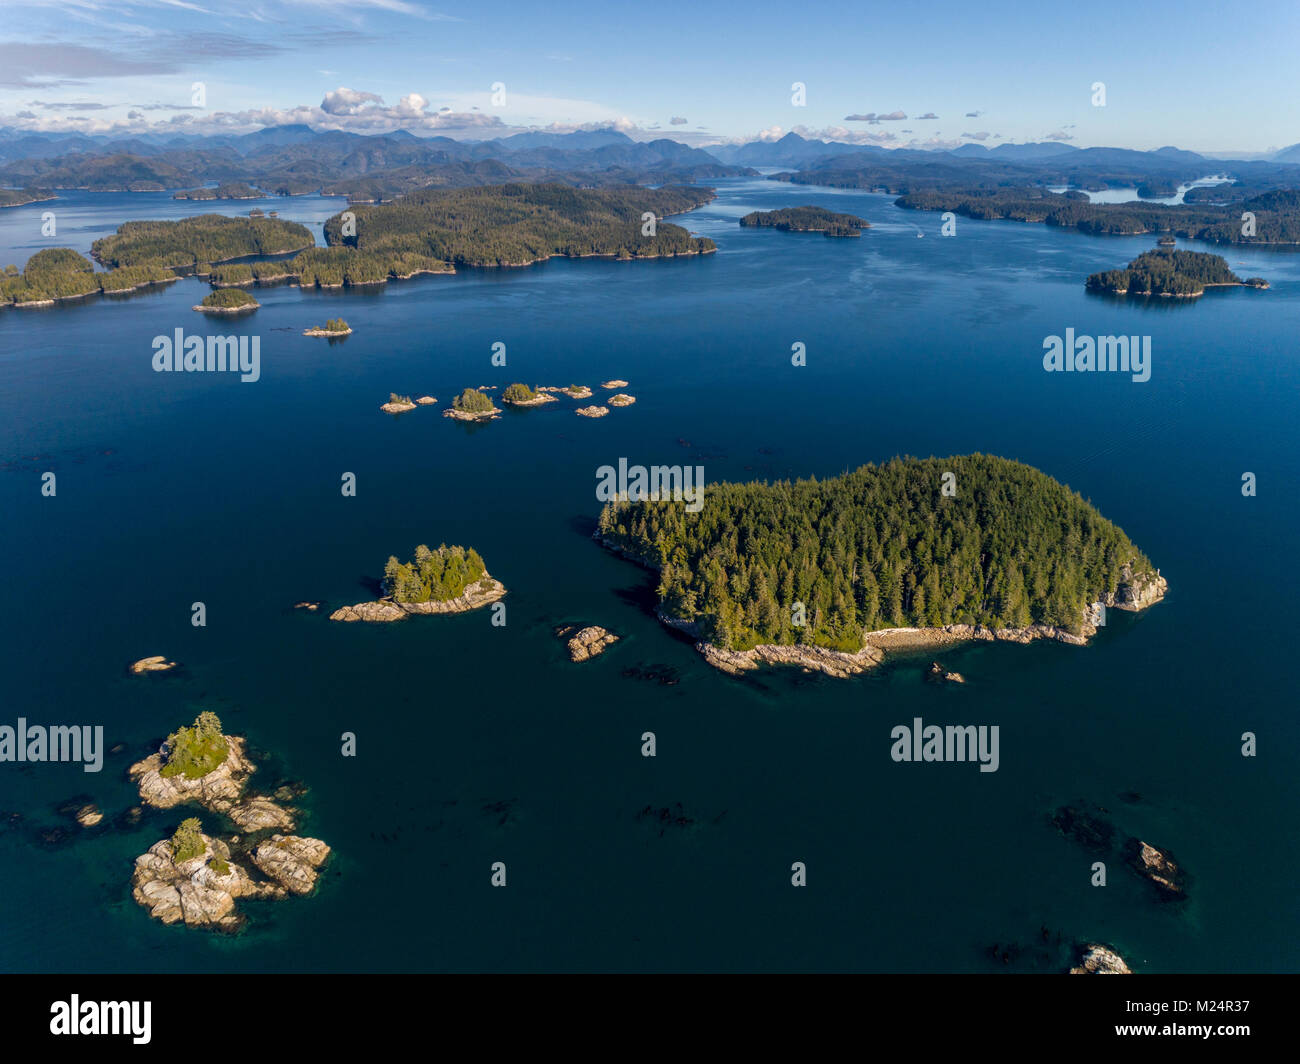 Aerial photograph of the Broughton Archipelago Marine Park and the entrance of Knight Inlet, First Nations Territory, - Stock Image